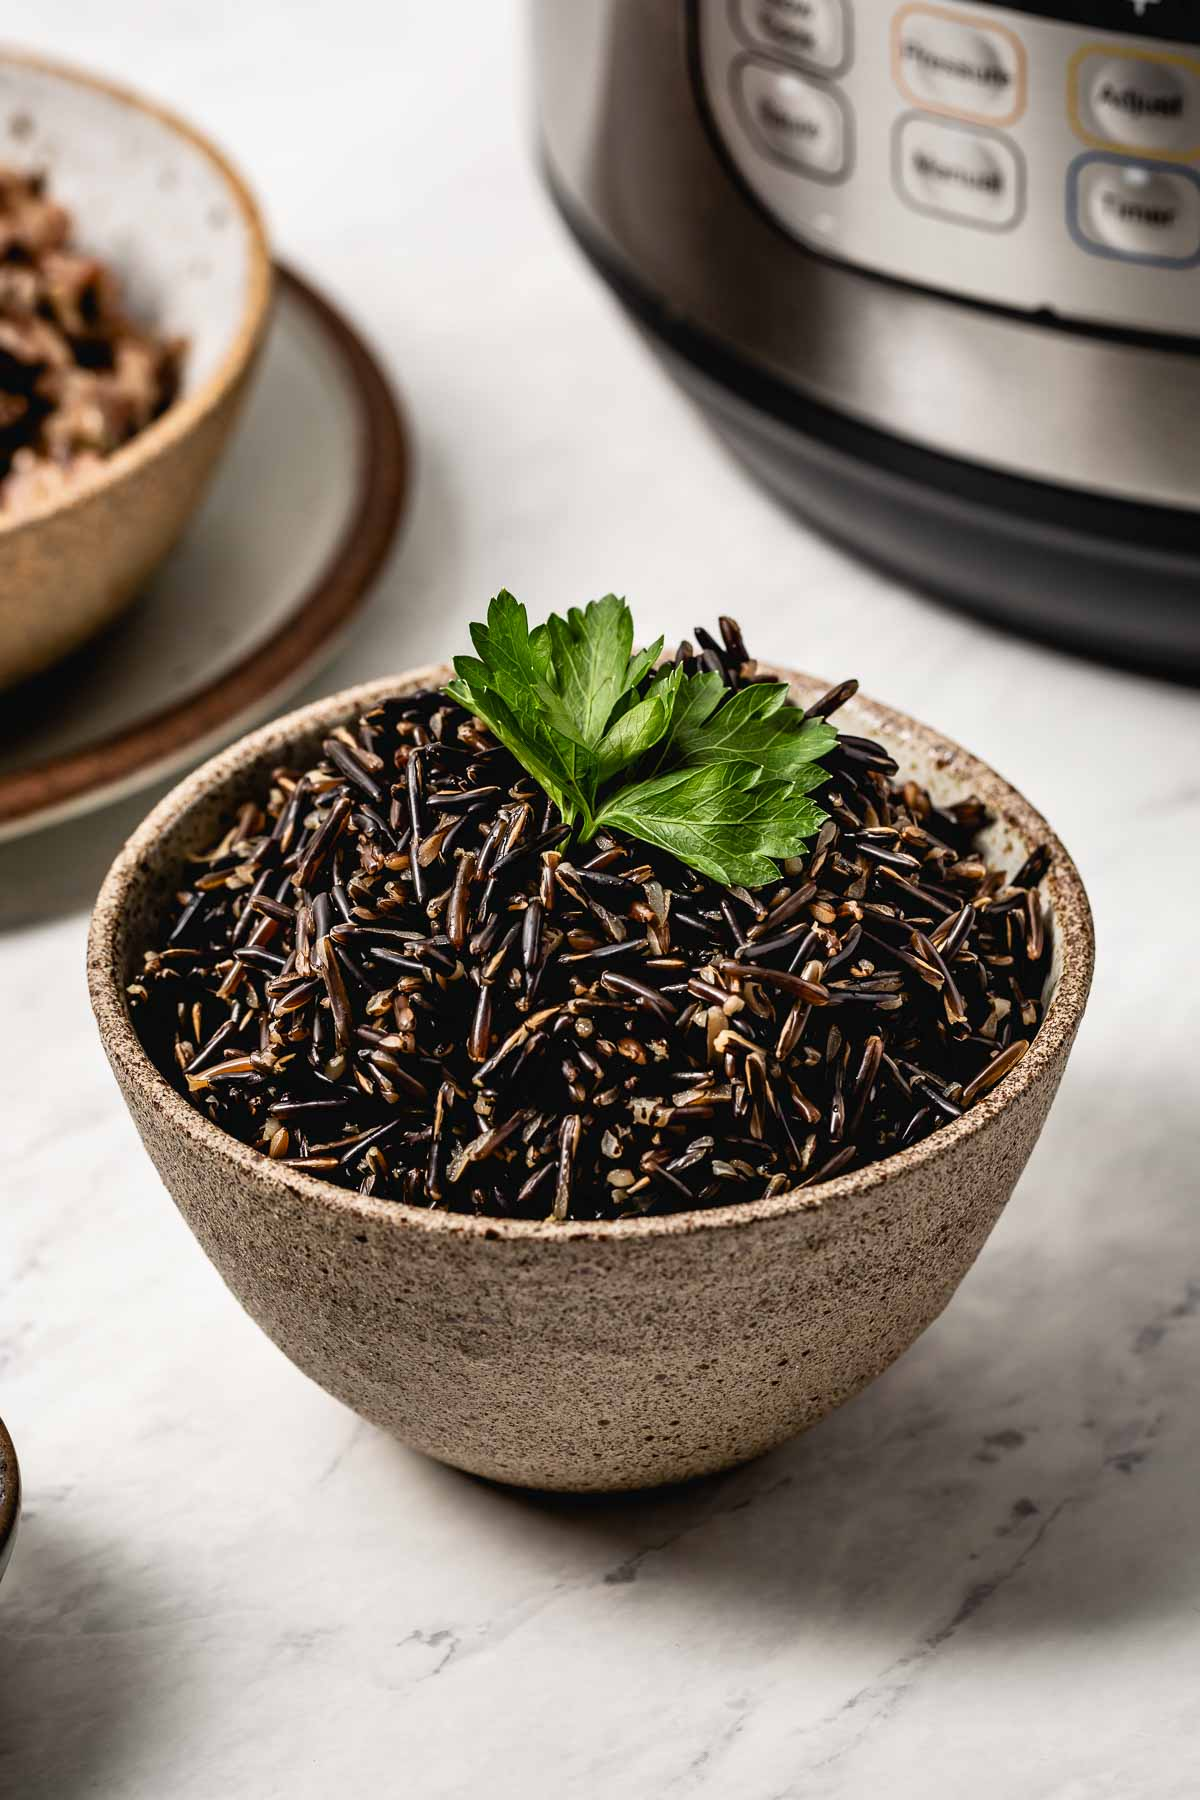 Cooked wild rice in a bowl garnished with parsley